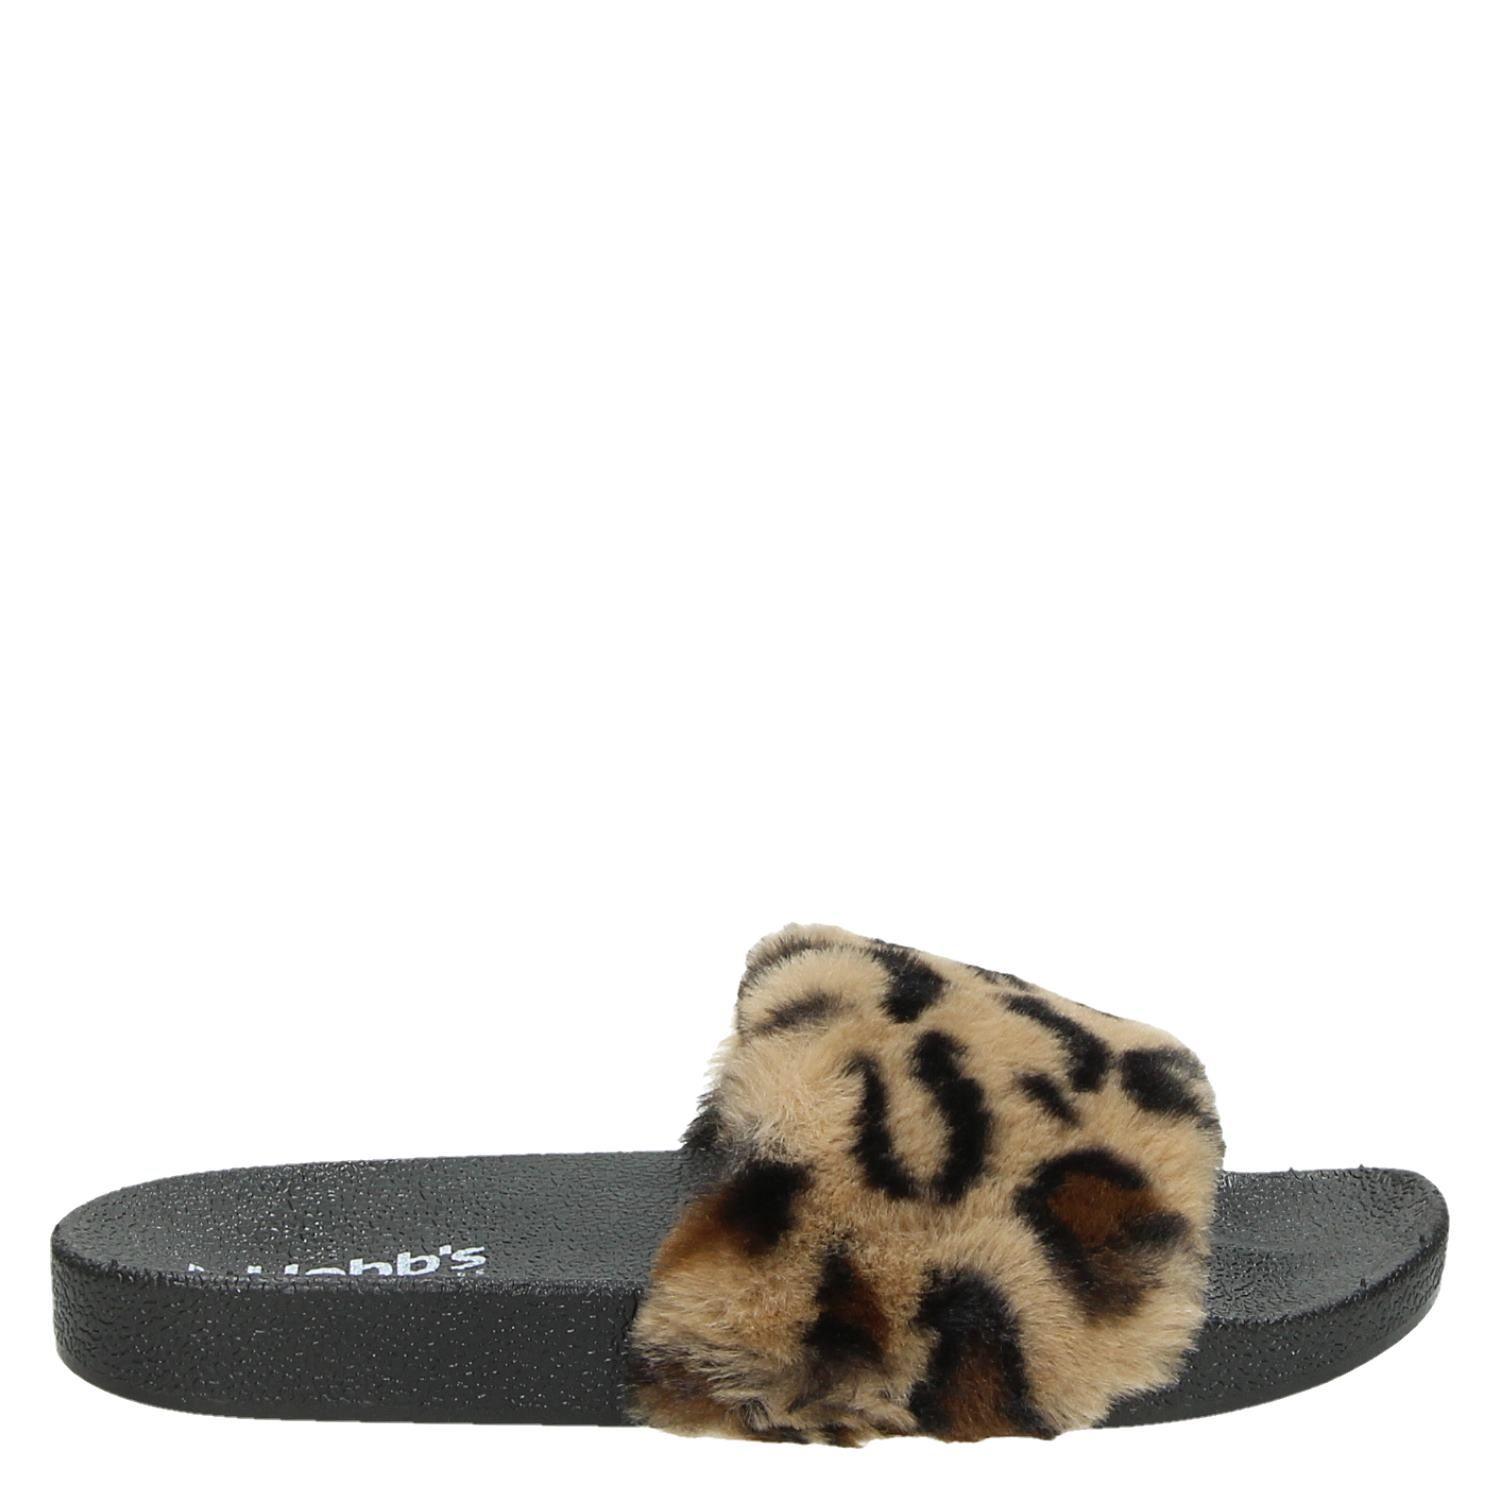 Les Badslippers Hobb Multiples A9oH0Rky